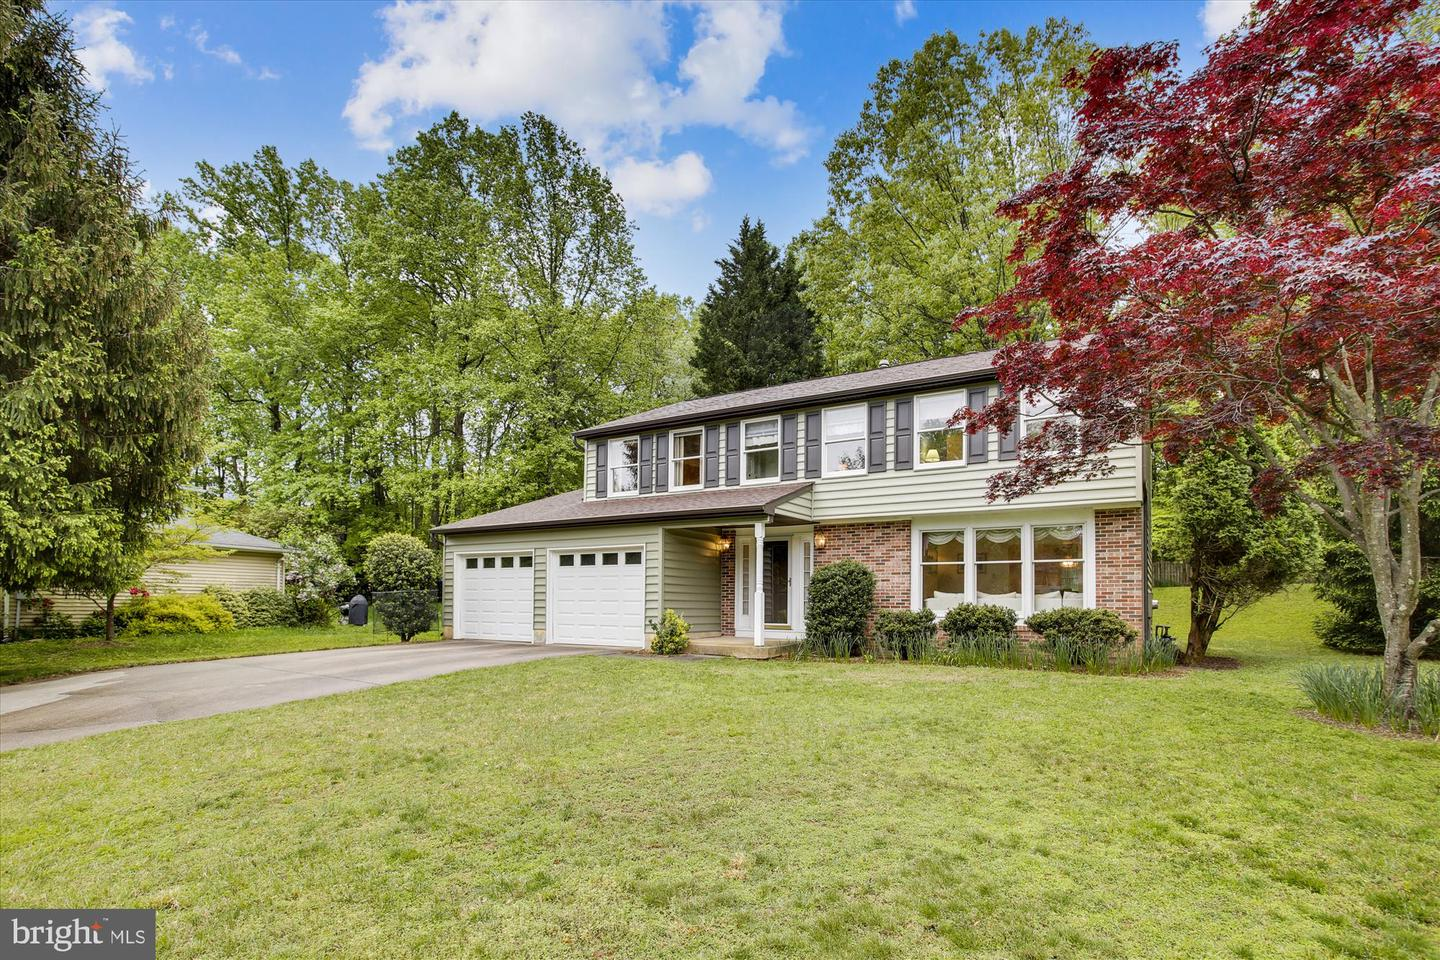 1107 NETHERLANDS CT, SILVER SPRING, Maryland 20905, 4 Bedrooms Bedrooms, ,3 BathroomsBathrooms,Single Family,For Sale,1107 NETHERLANDS CT,MDMC756586